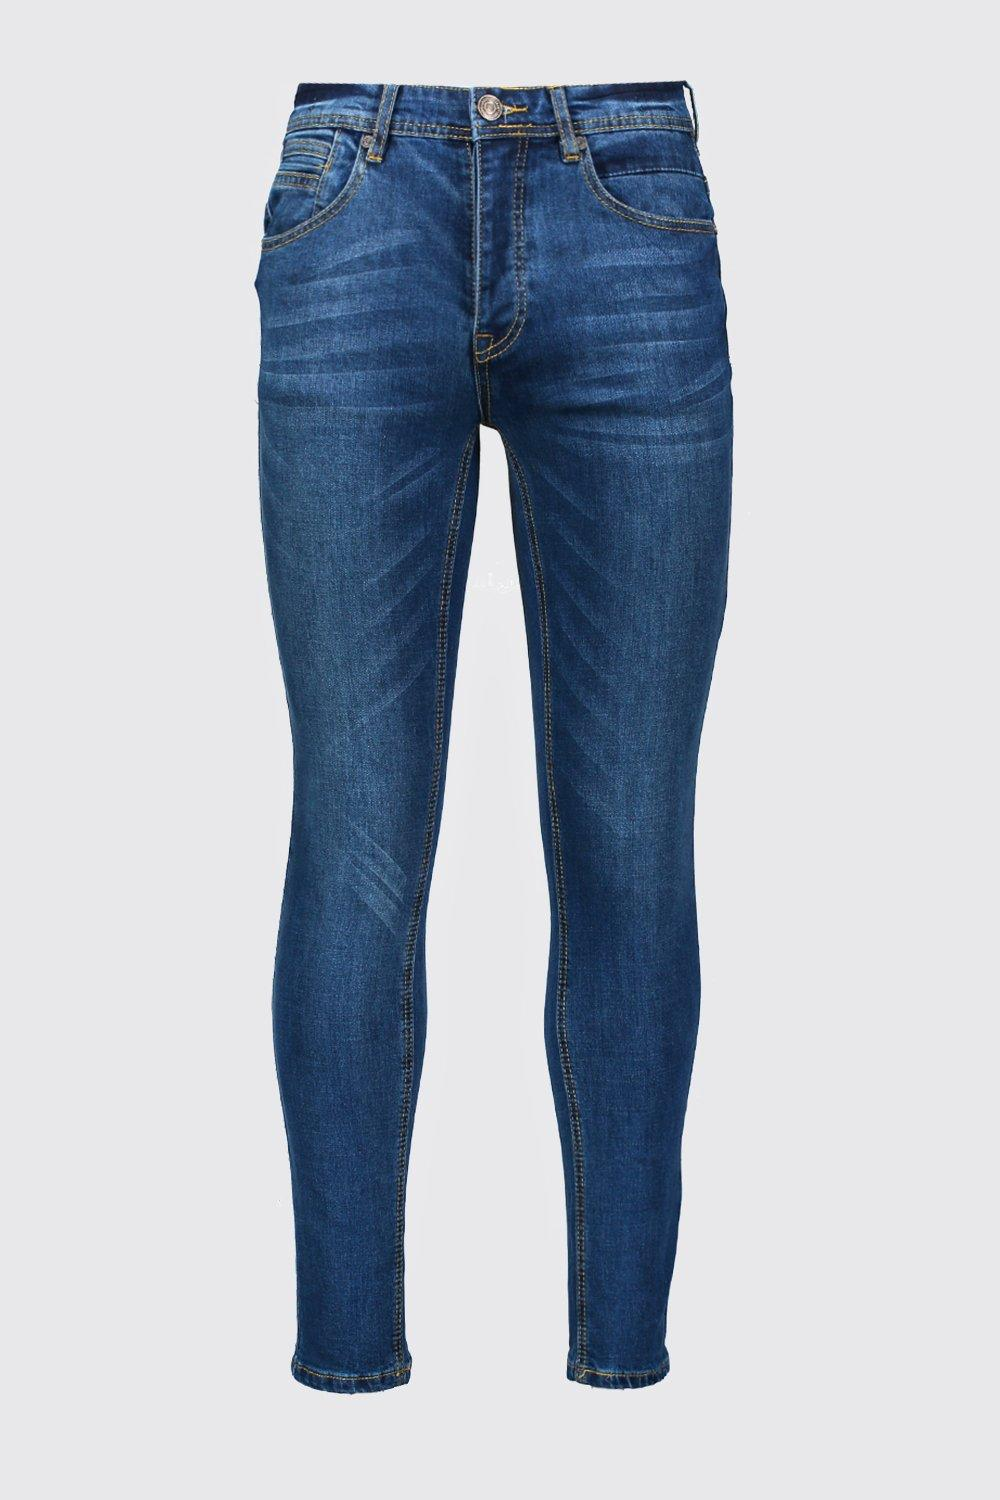 Skinny Denim blue Fit Skinny blue Fit Denim Jeans Jeans Fit Skinny Denim 7xPwx